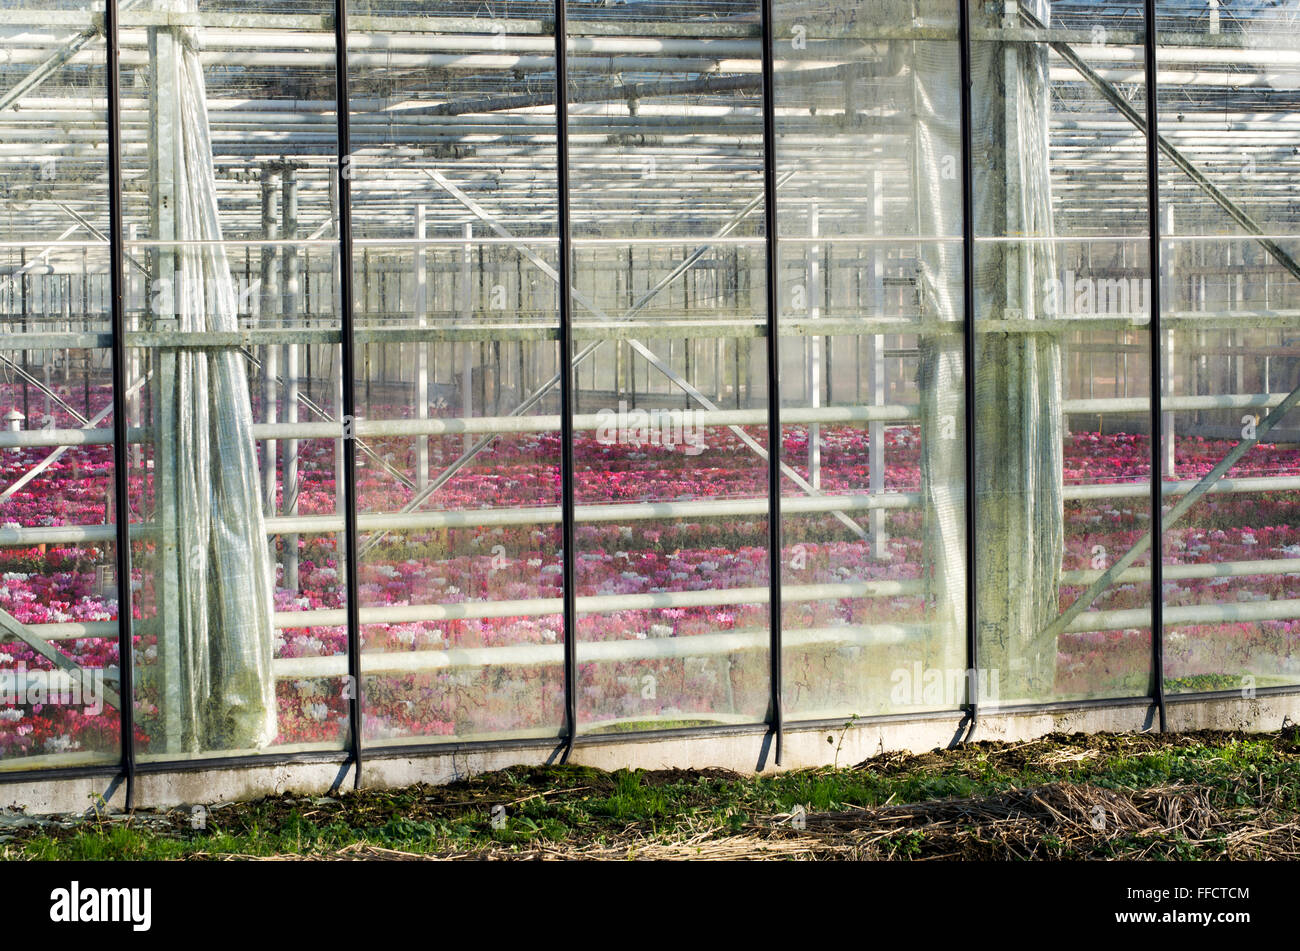 Flowers through the glass panels of a greeenhouse.flowers - Stock Image